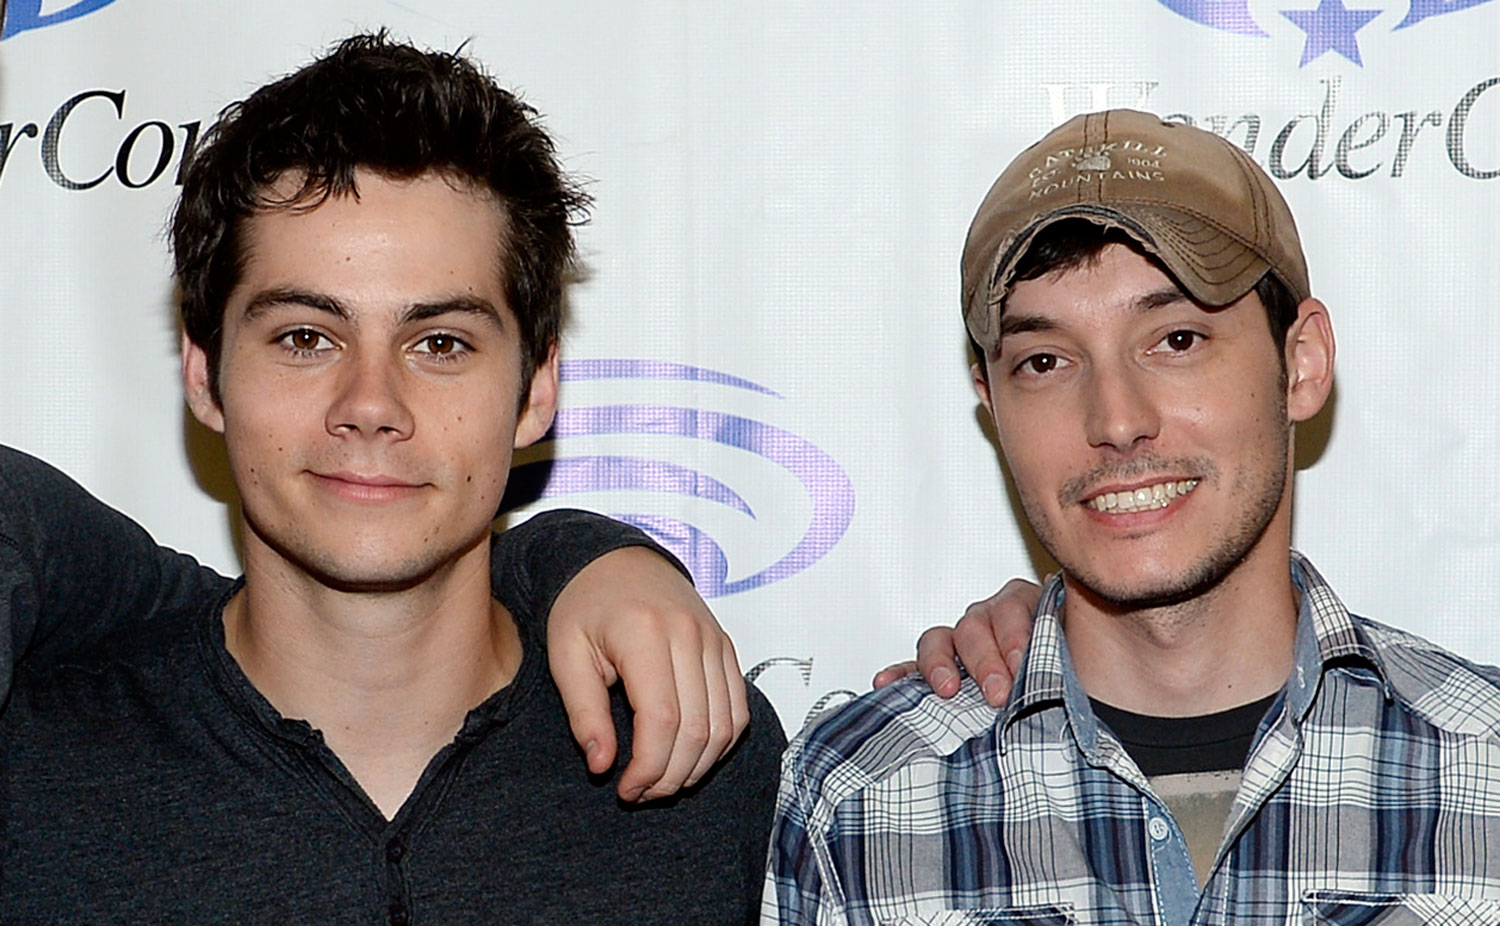 On dylan o brien s injuries dylan o brien wes ball just jared